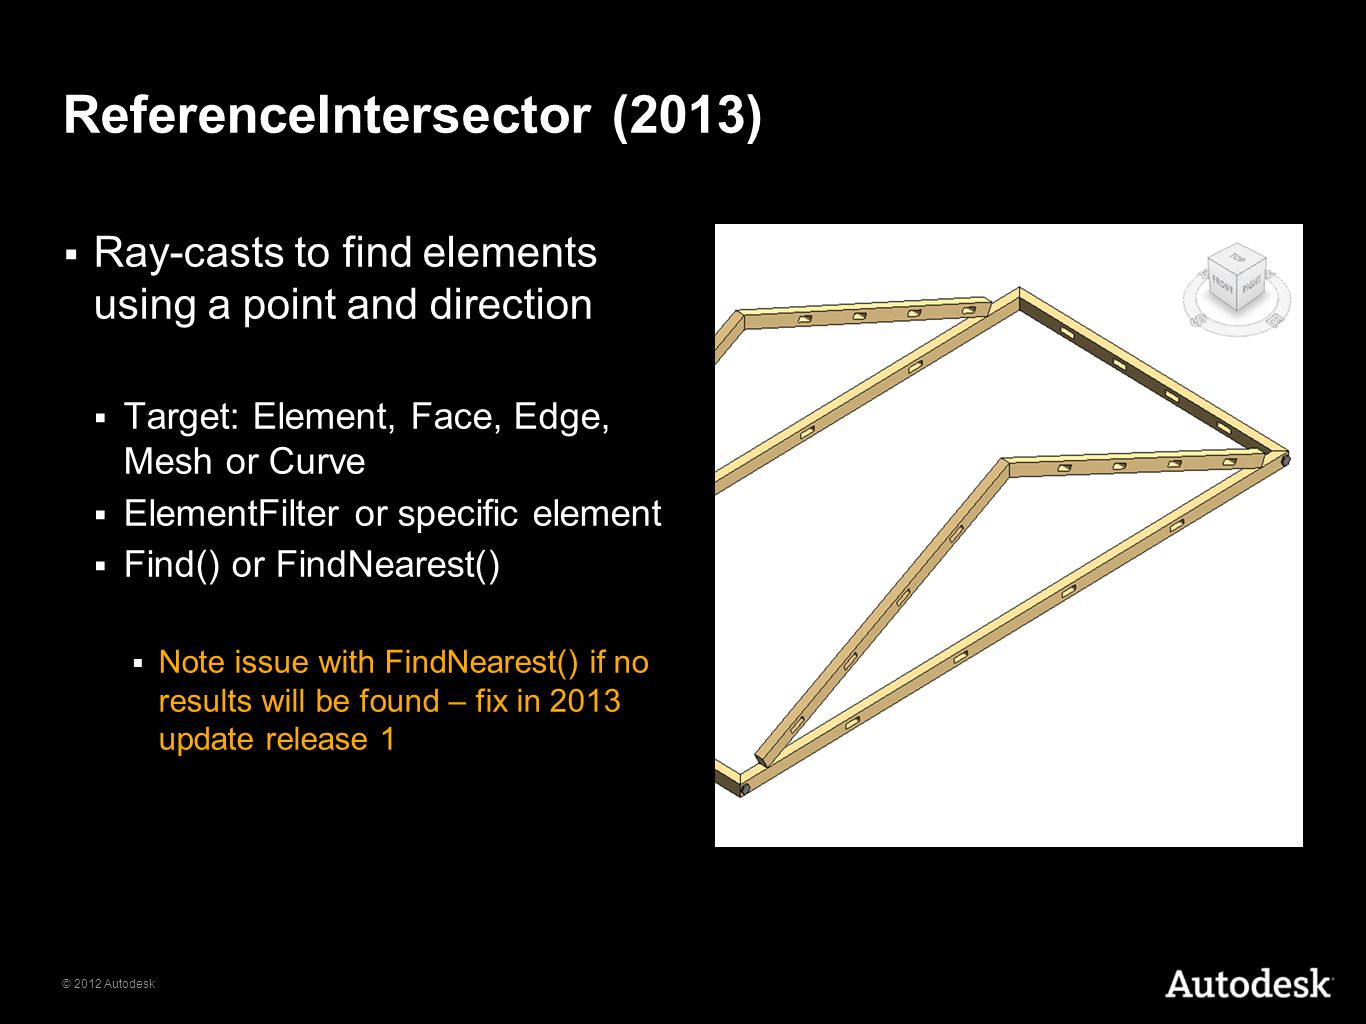 ReferenceIntersector (2013)